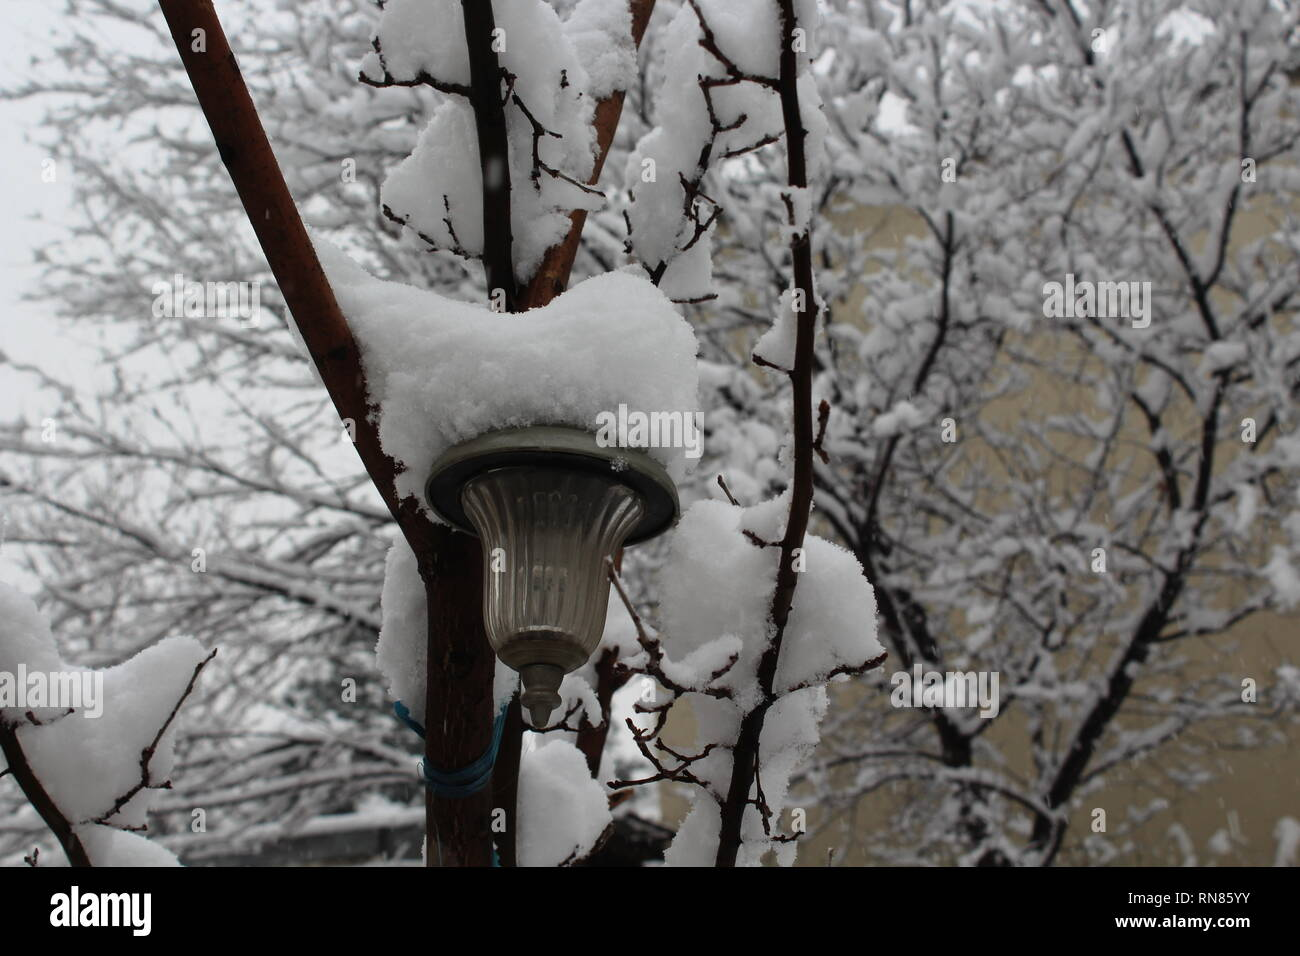 An outdoor pendant light covered with snow in Kabul, Afghanistan. - Stock Image